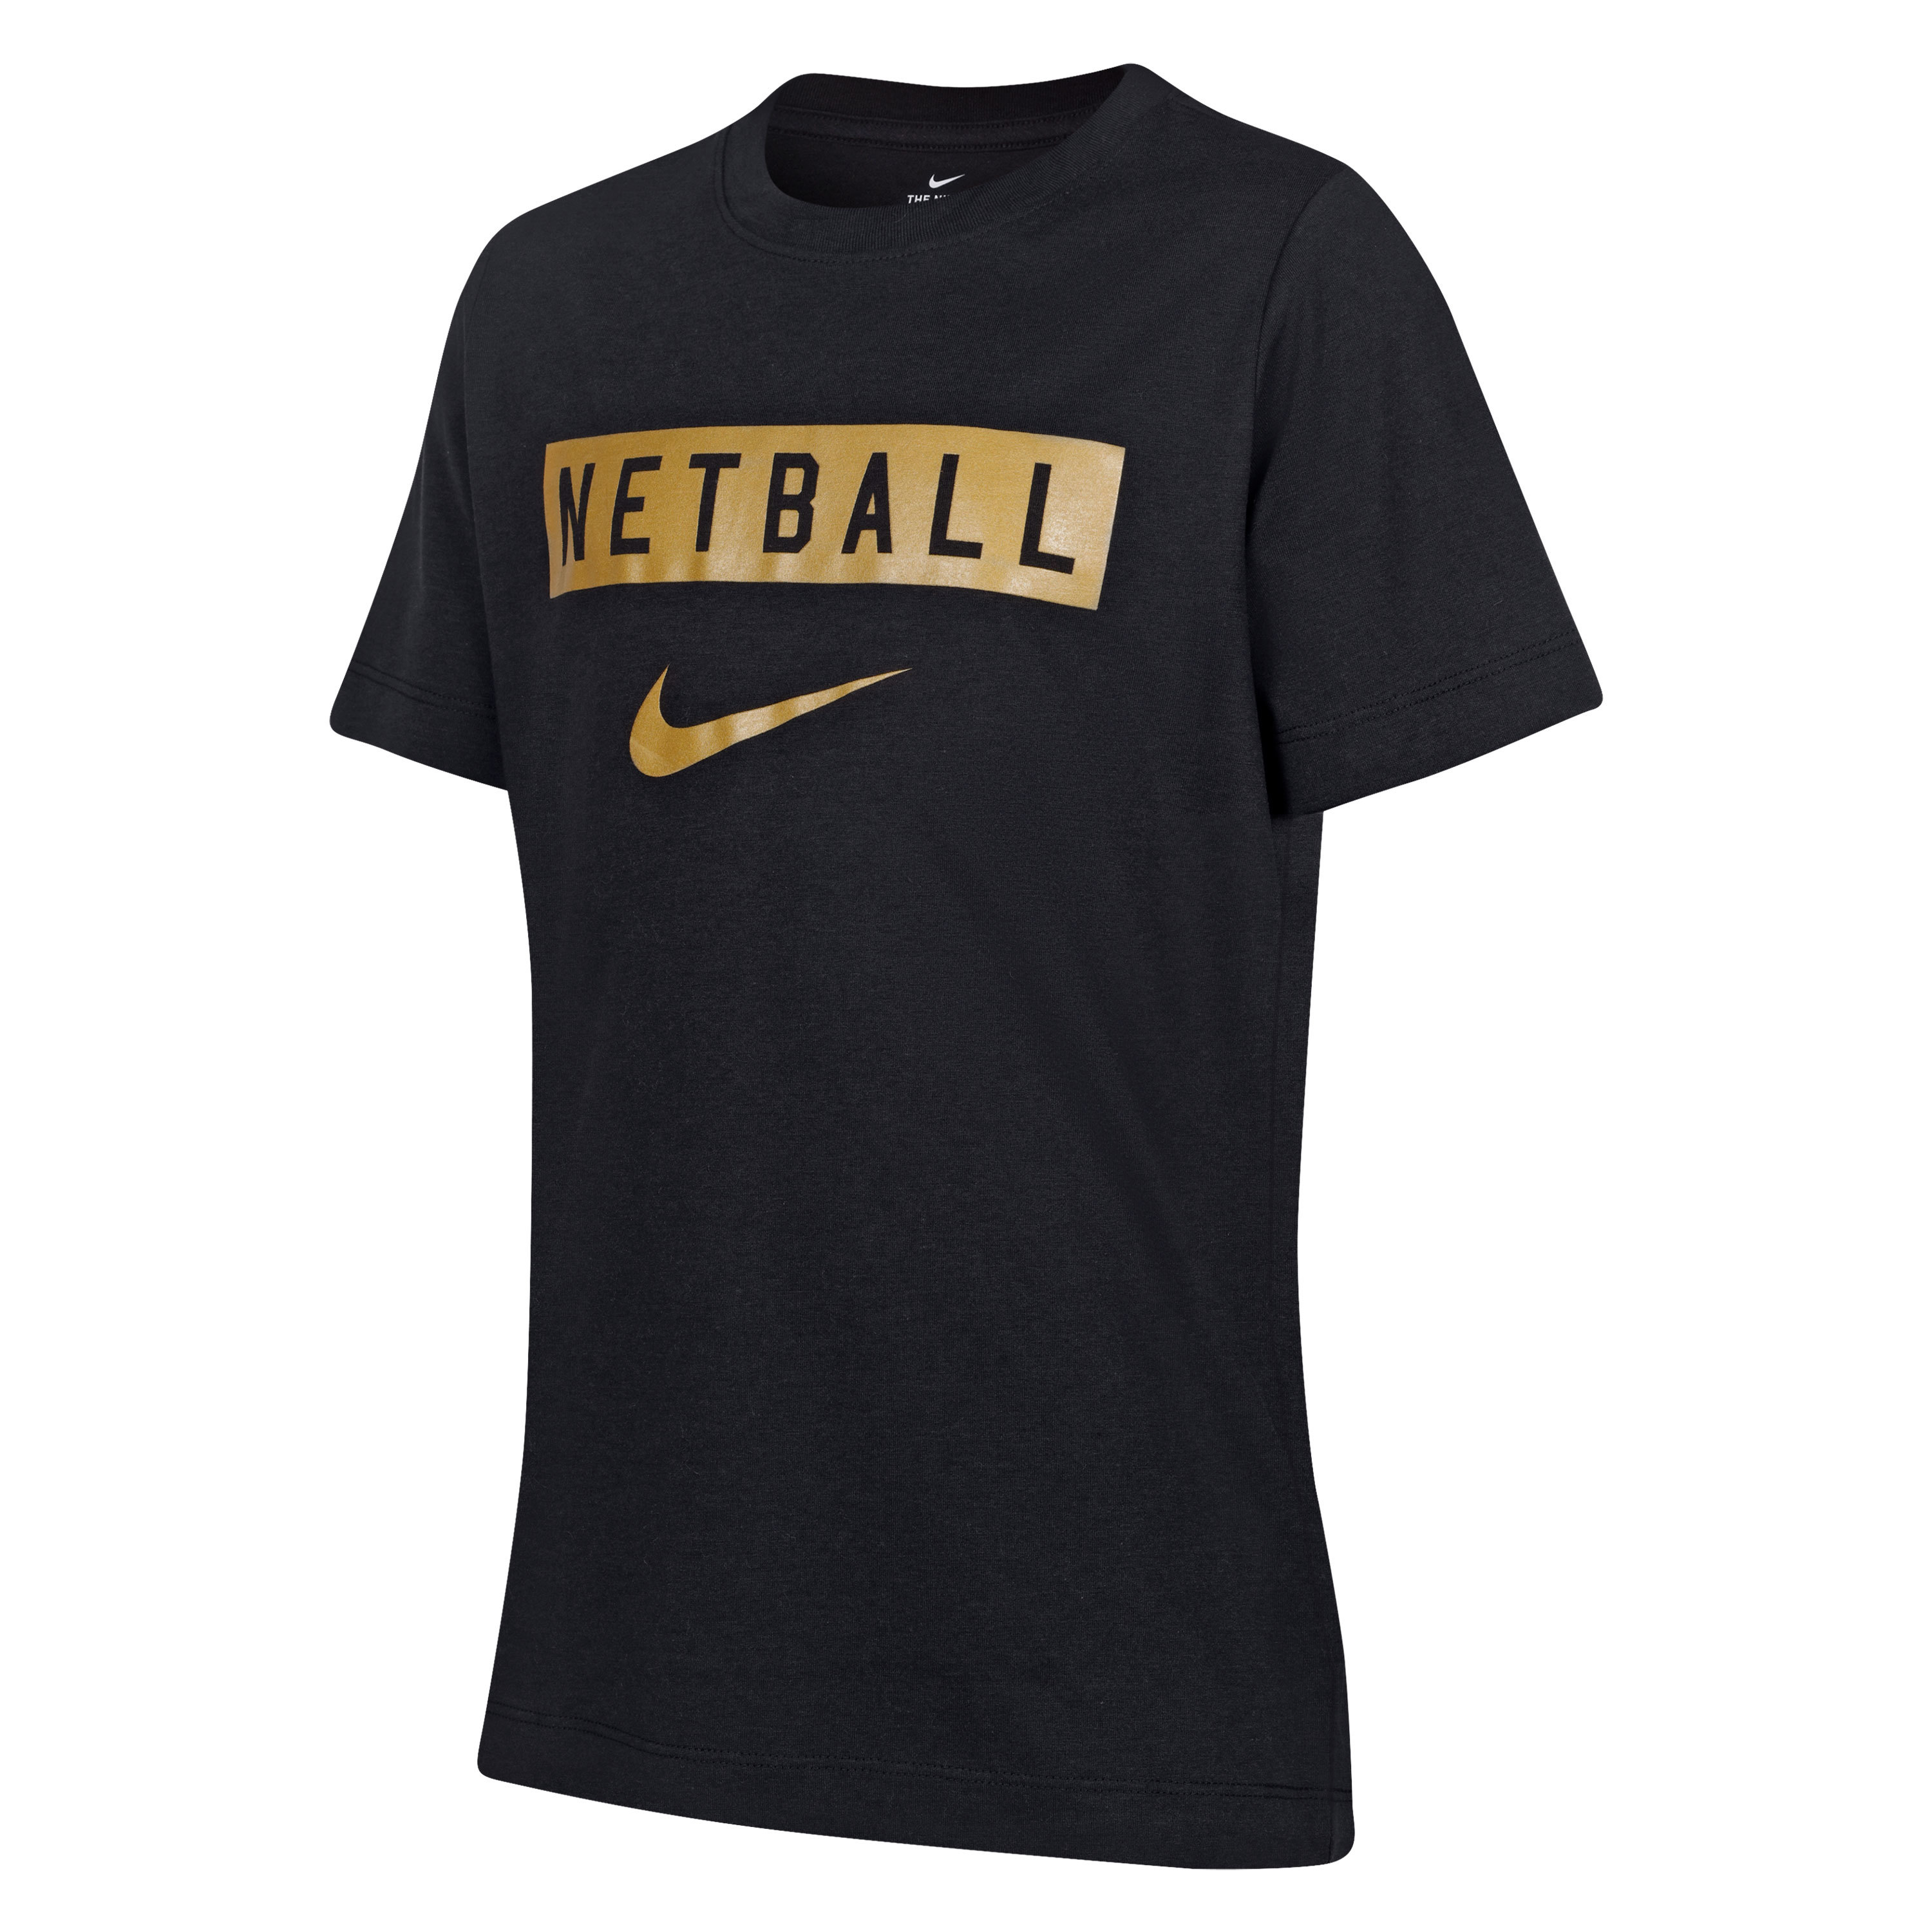 England Netball Youth Nike Swoosh Supporters Tee